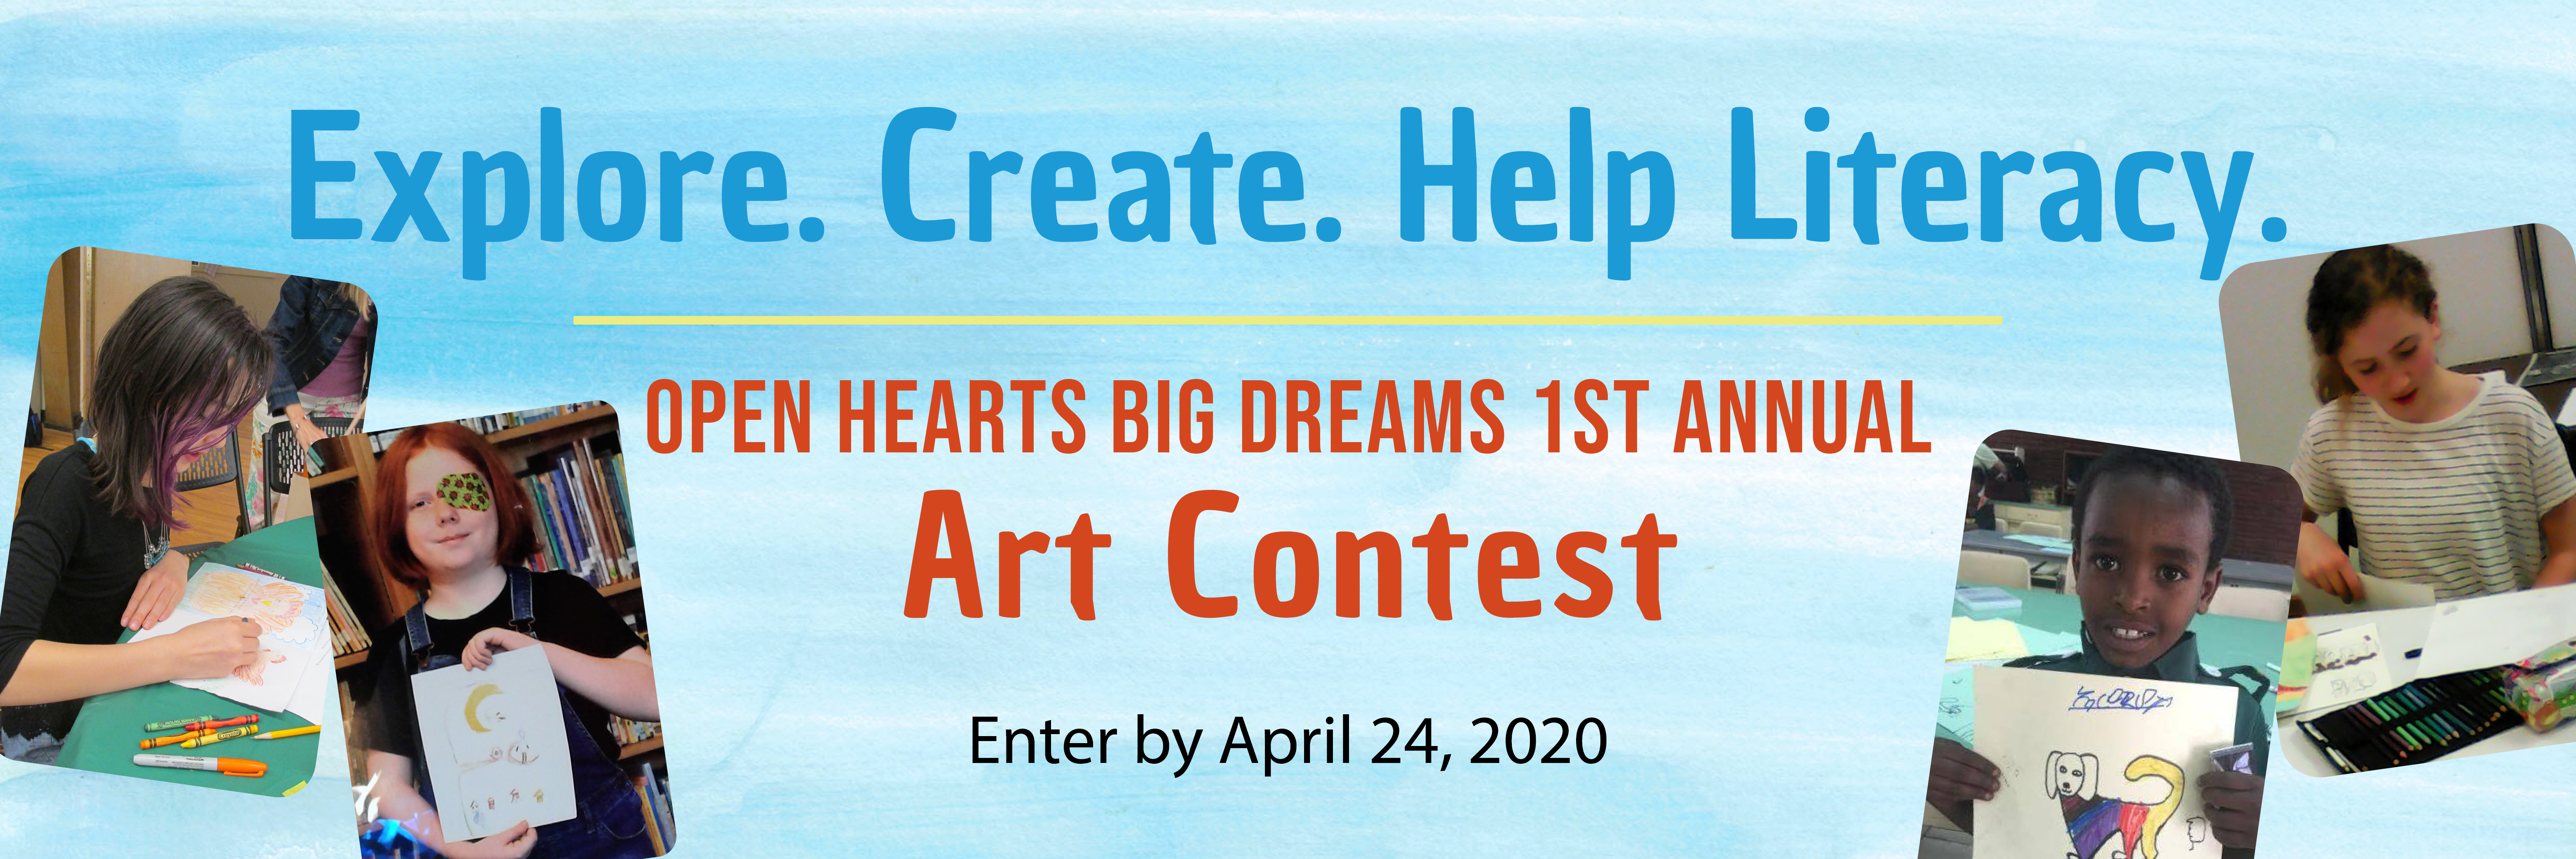 Art Contest_Website Header